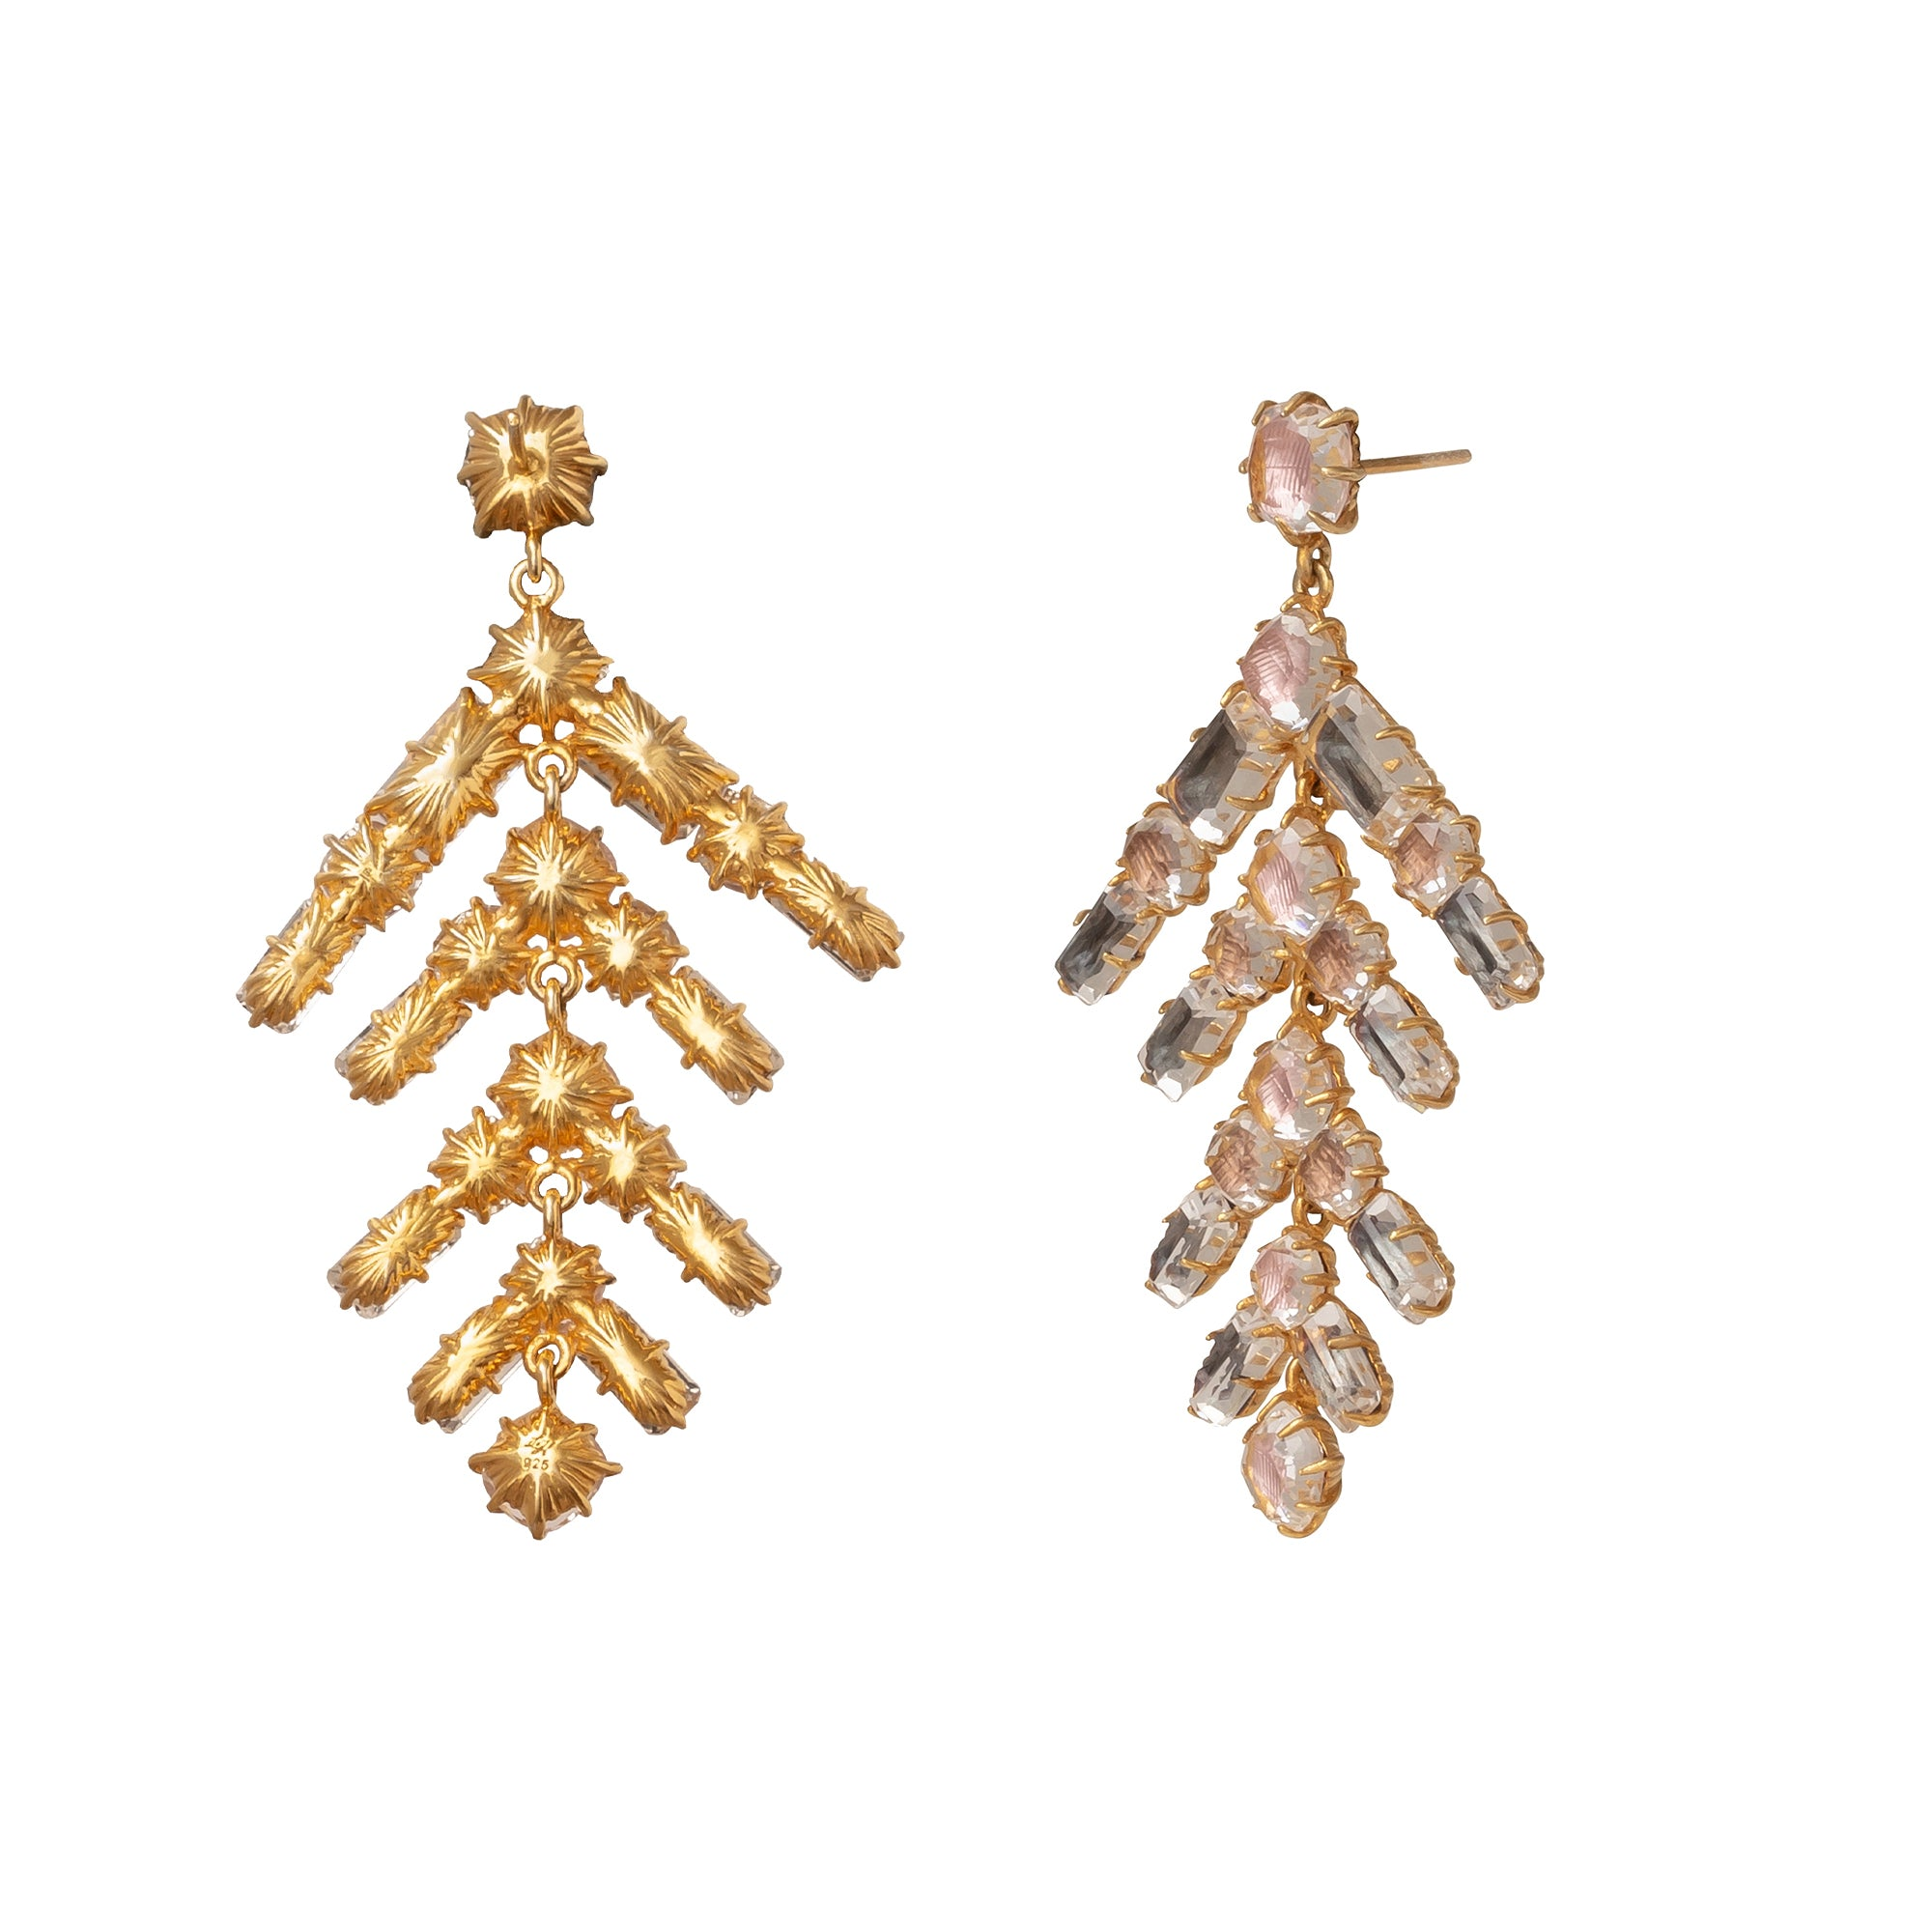 Caterina Multi-Fawn Branch Chandelier Earrings